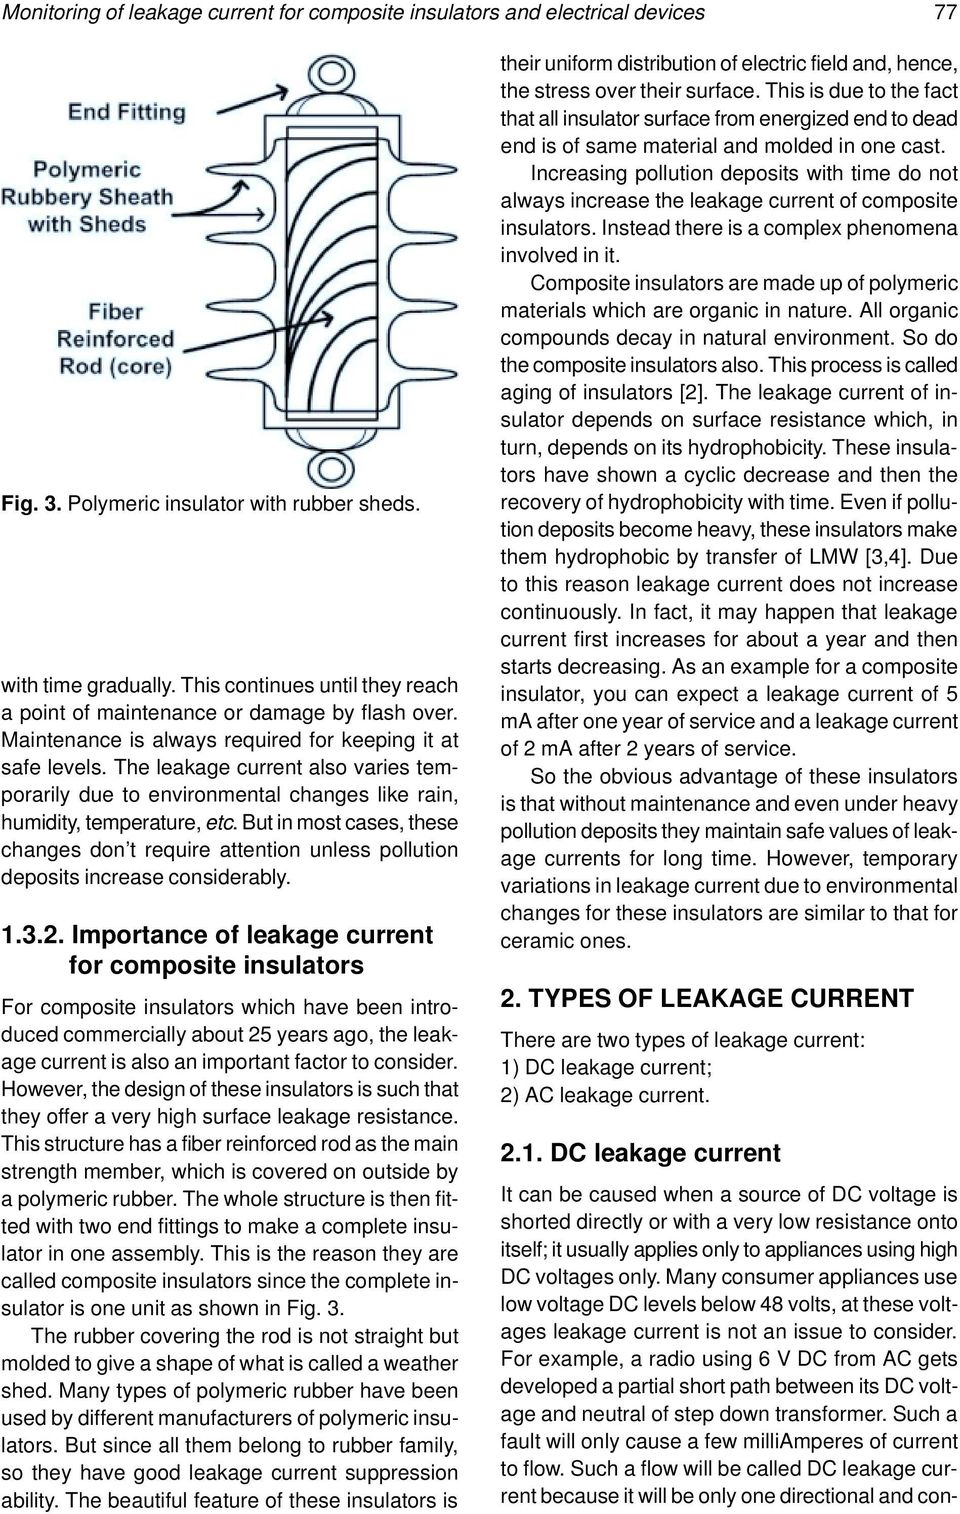 The leakage current also varies temporarily due to environmental changes like rain, humidity, temperature, etc.